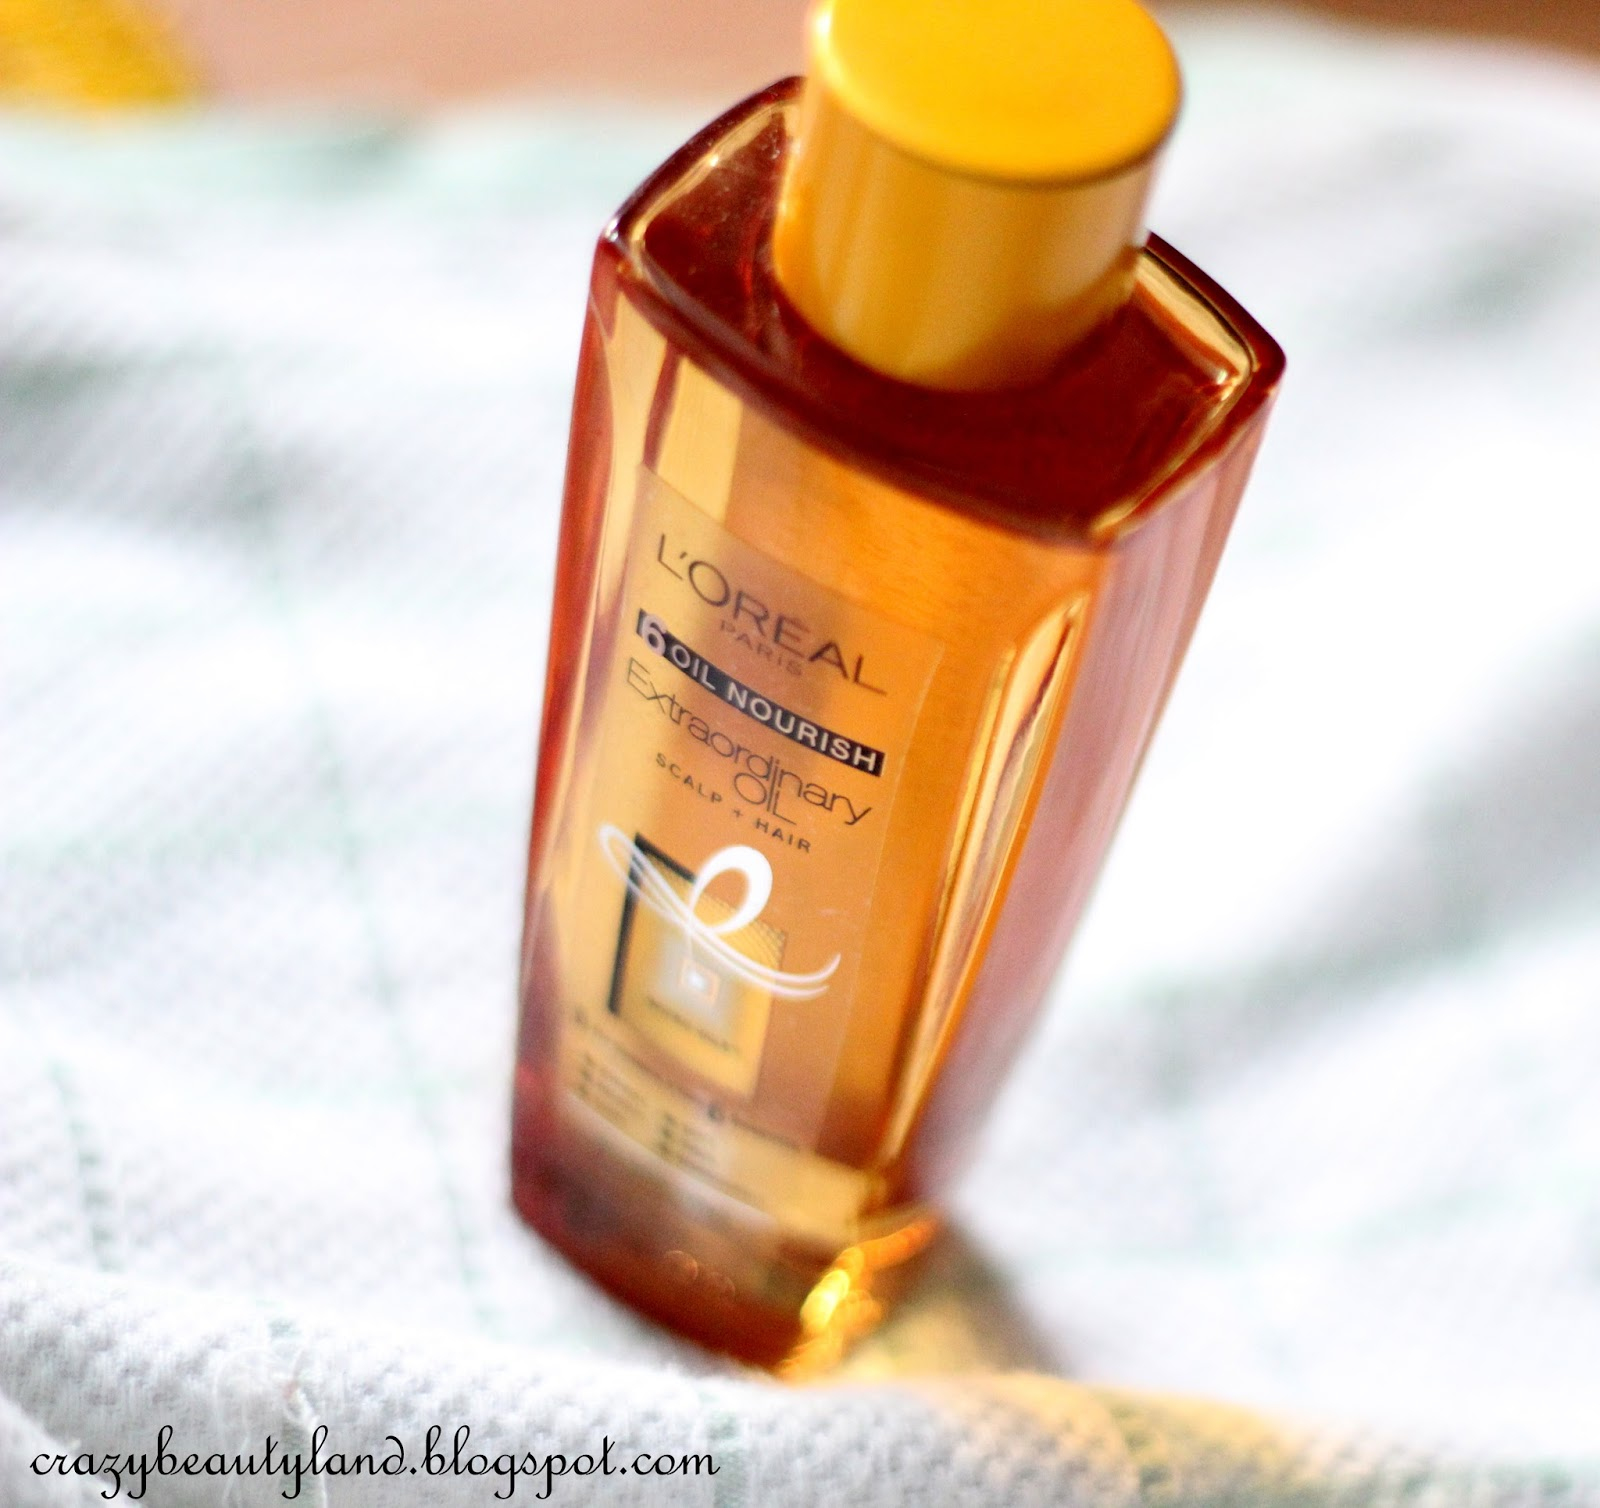 L'Oreal 6 Oil Nourish Extraordinary Oil Scalp+Hair in India - Review,photos,price, how to use it, oil for dry hair. hair care, dry hair therapy, loreal hair products,